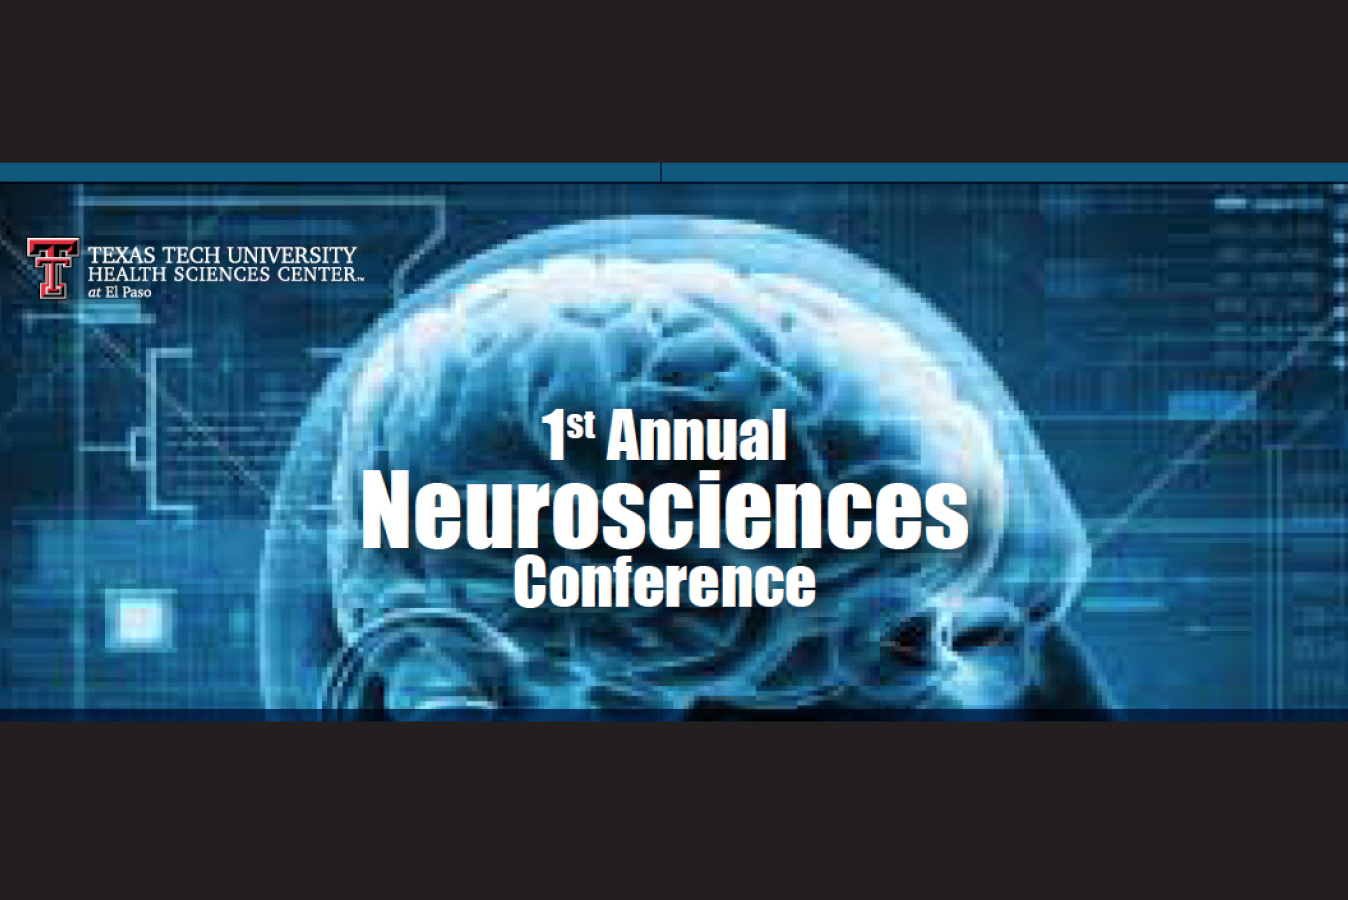 First Neurosciences Conference